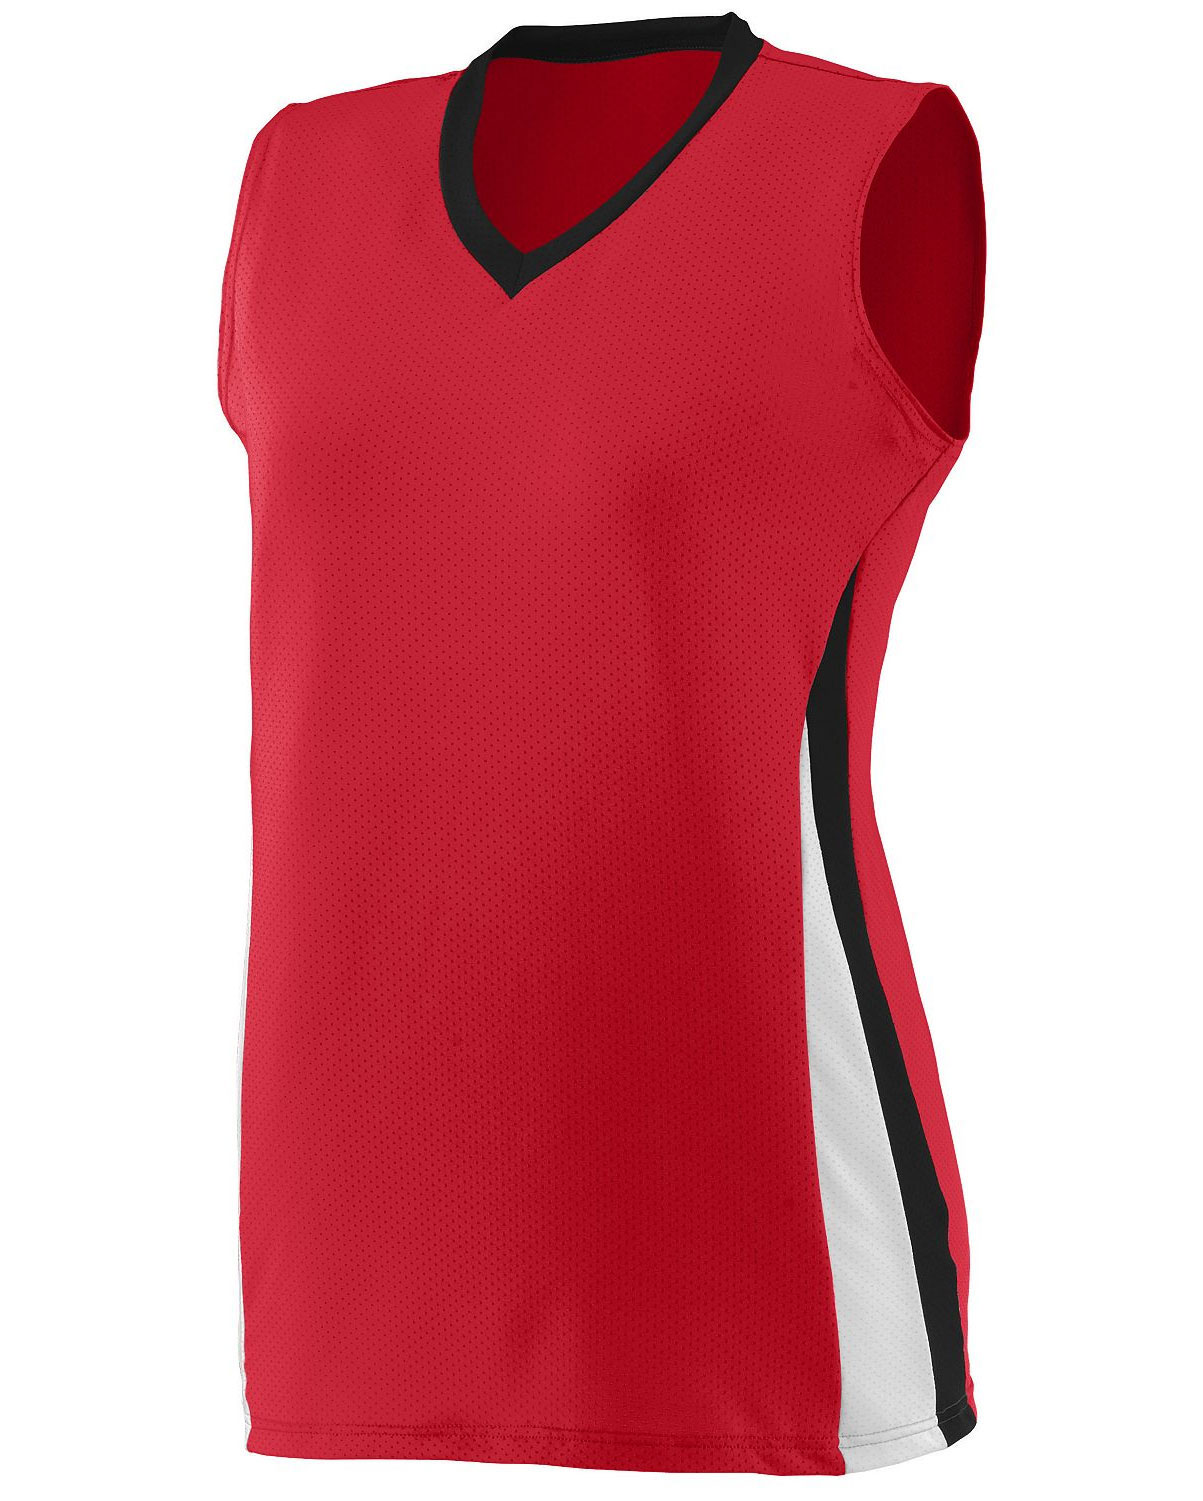 Augusta Youth Girls Tornado Jersey